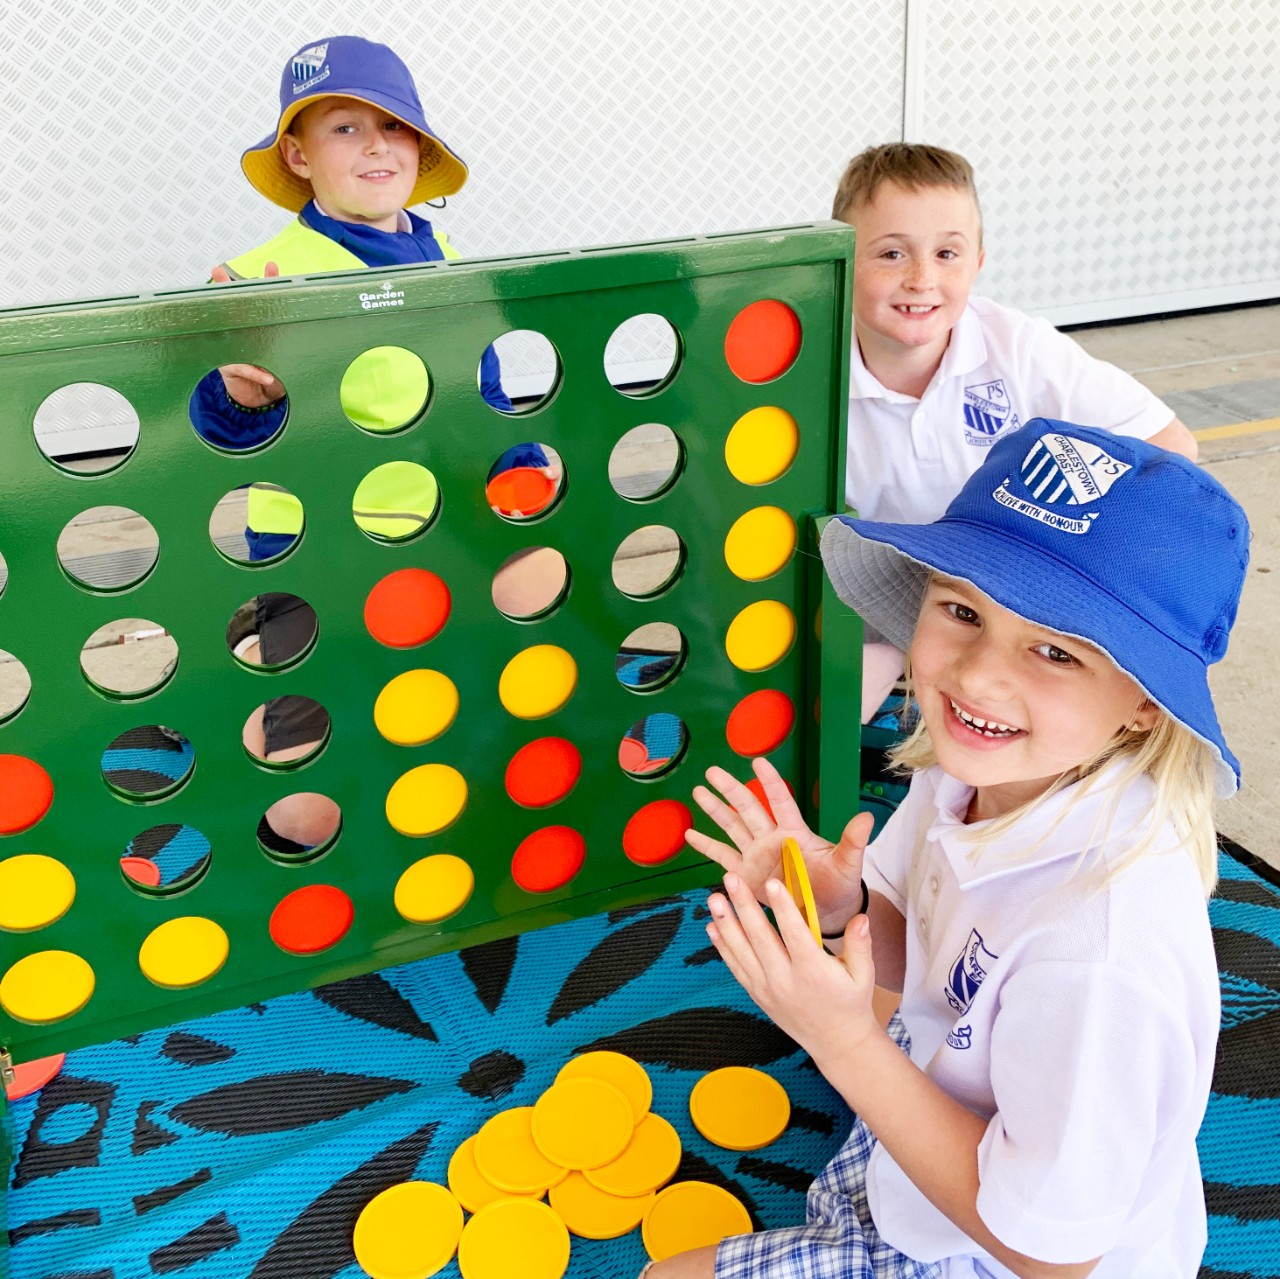 Kids playing giant connect 4 game